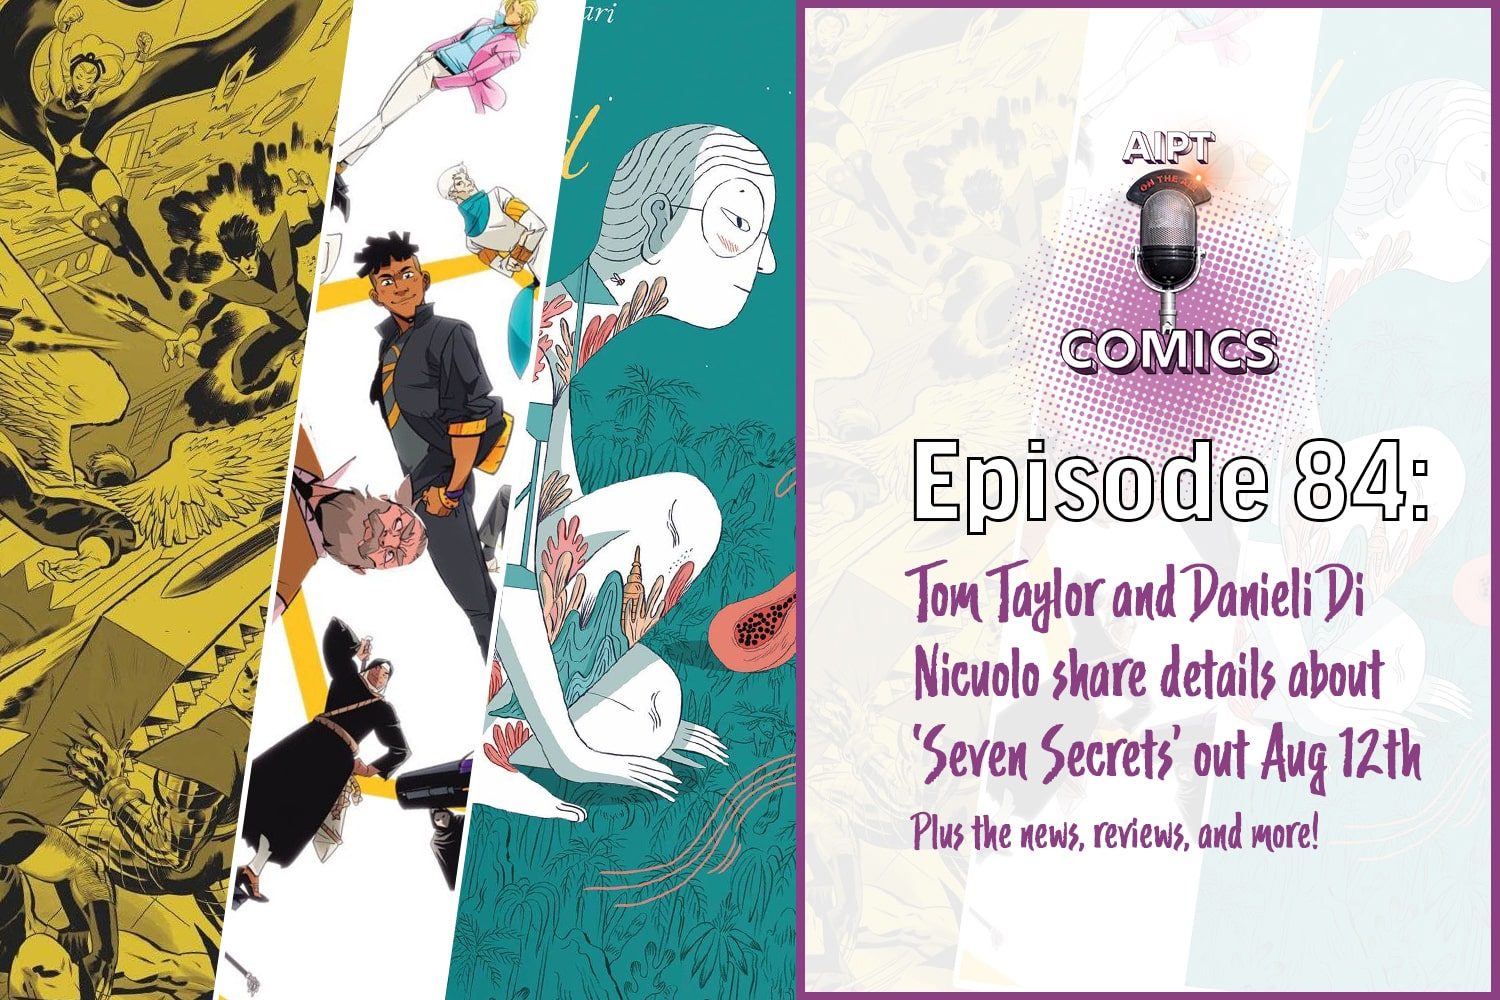 Get the inside scoop with the creators behind Seven Secrets, learn the most important news of the week, and so much more.